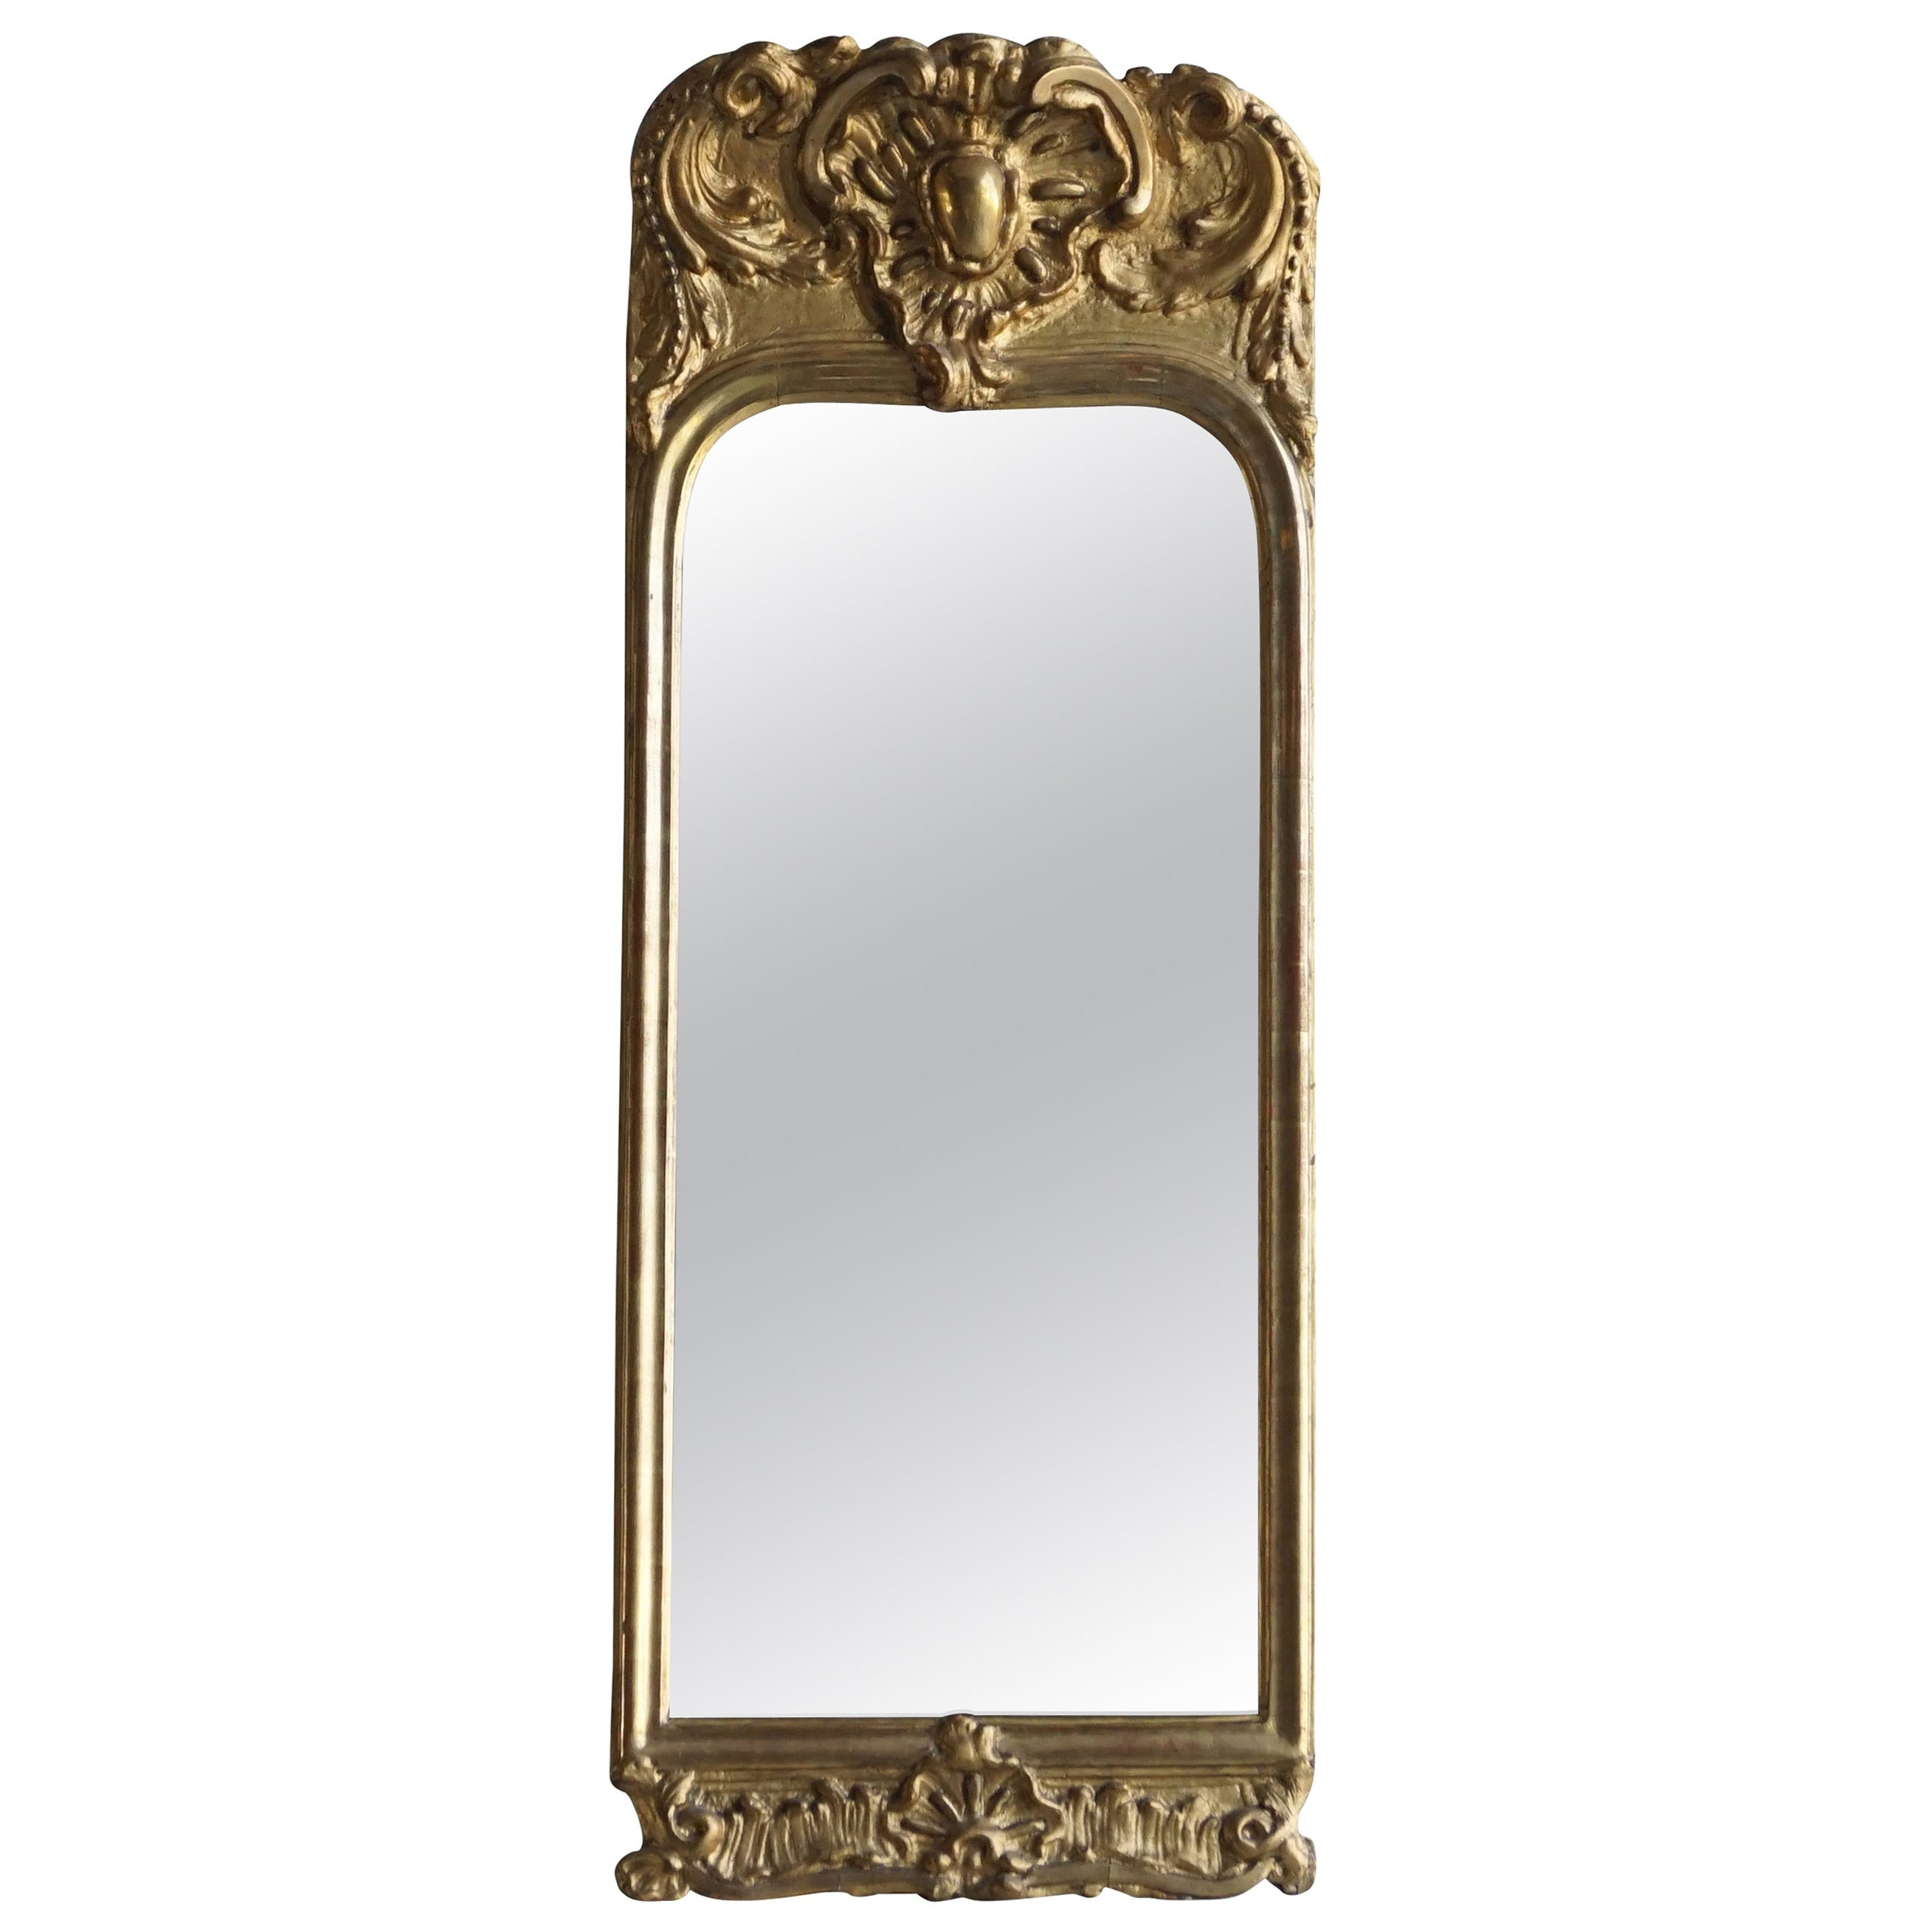 18th Century French Gilded Rococo Wall Mirror